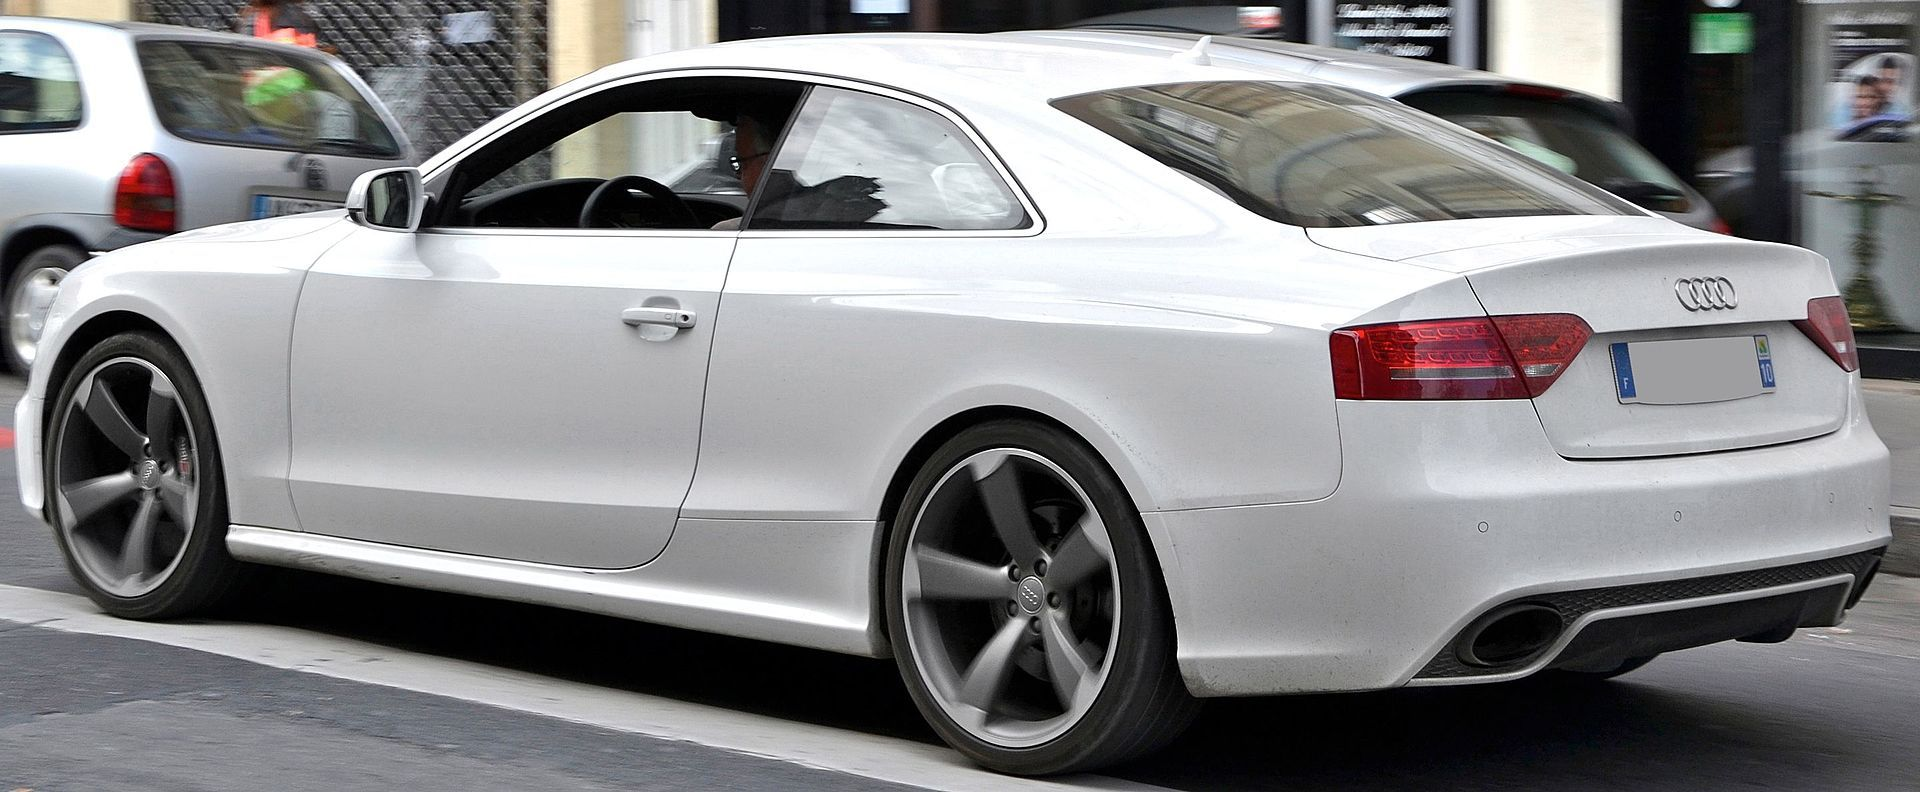 Audi Rs5 Flickr Alexandre Prévot 10 Cropped A5